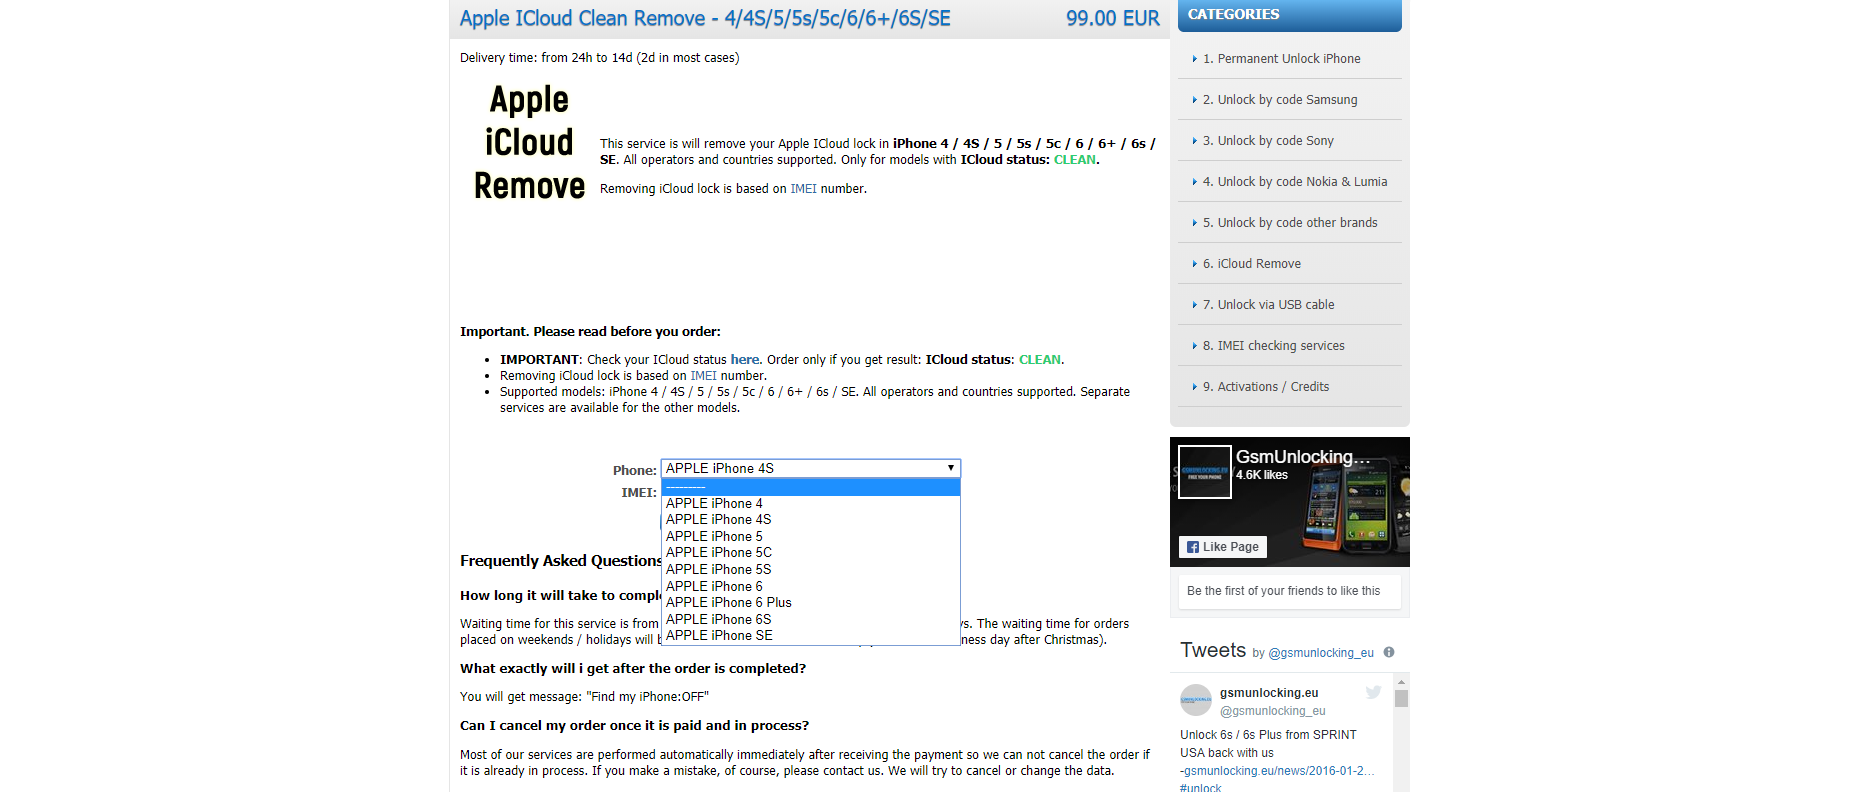 iCloud Clean Removal - News - IMEI info